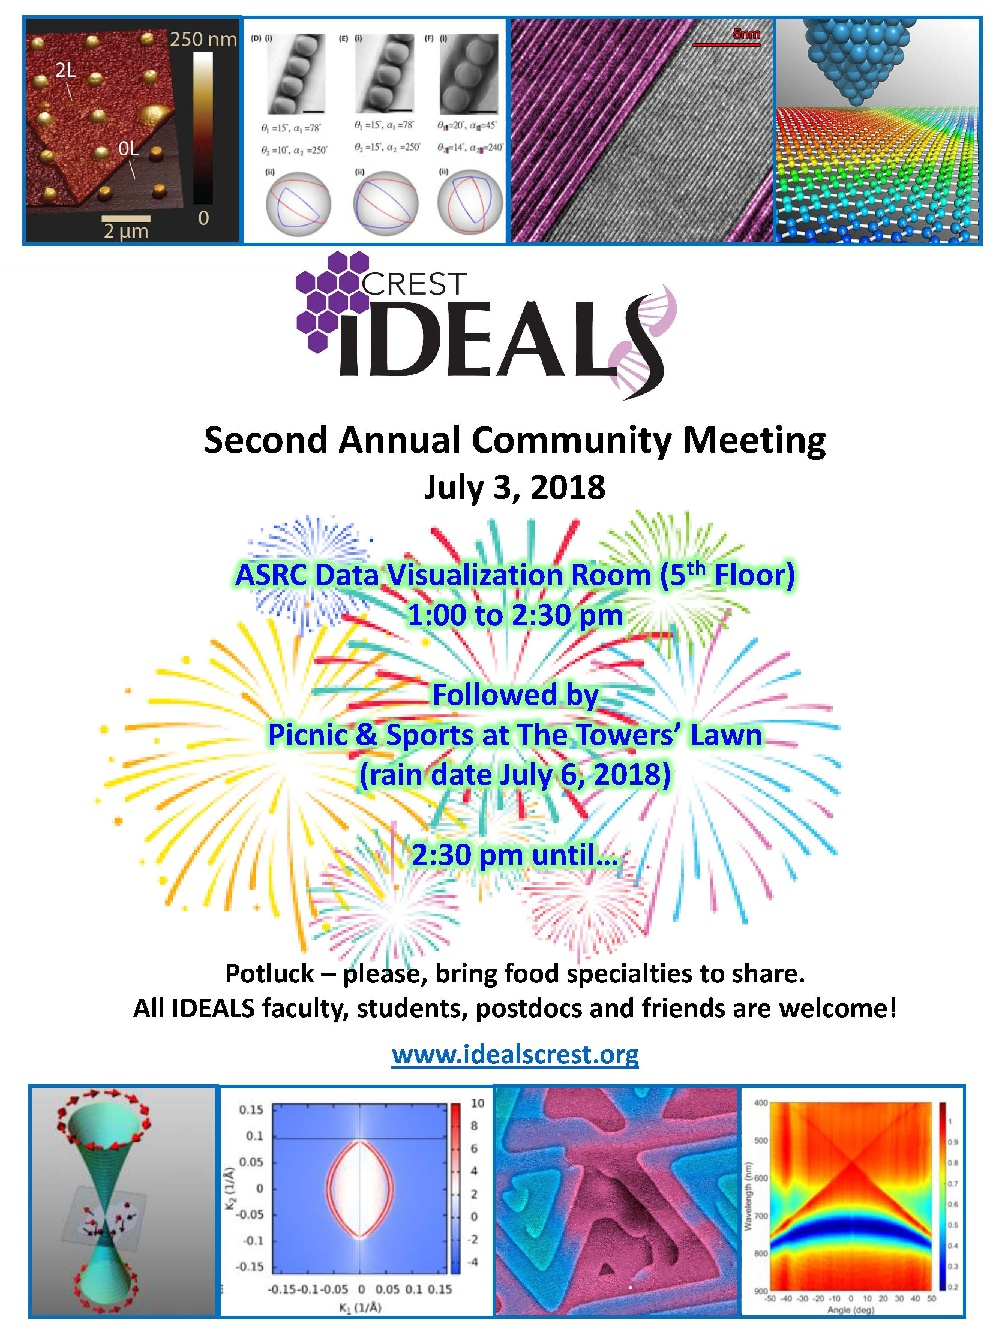 IDEALS 2nd Annual Community Meeting & Picnic